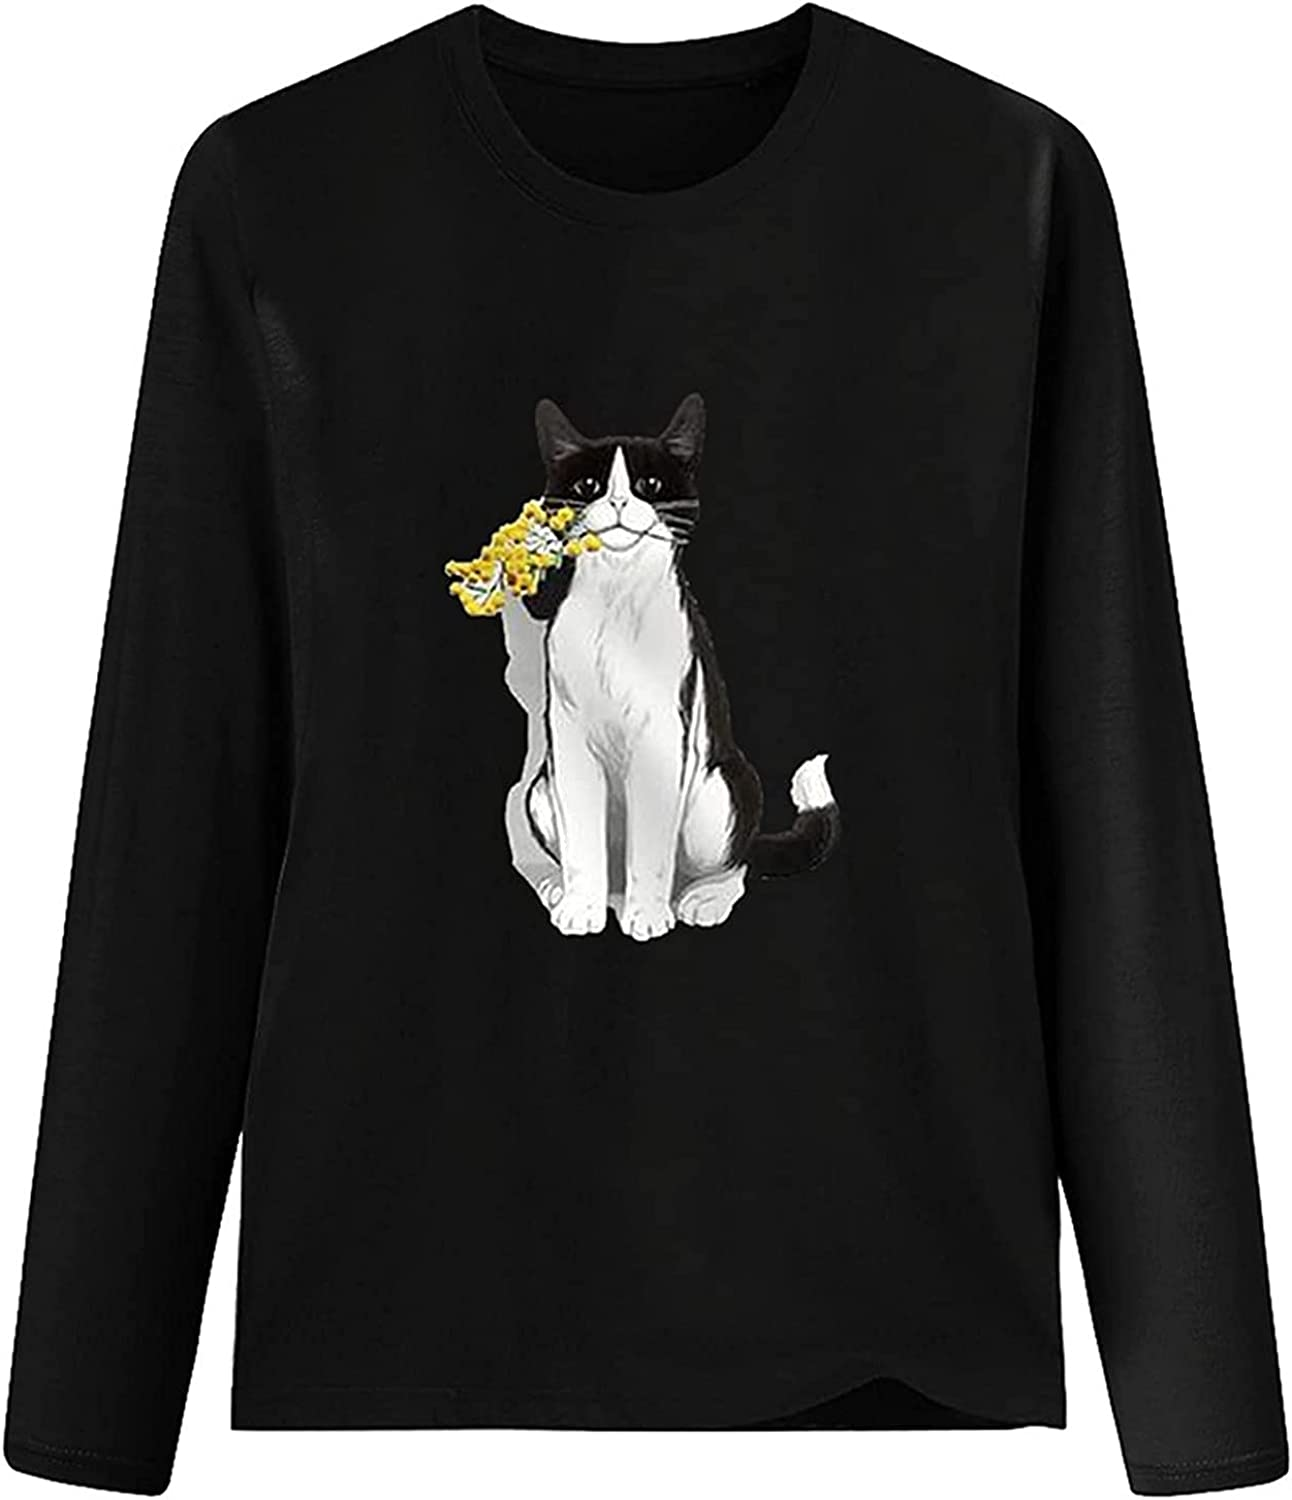 VonVonCo Fashion Pullover Sweaters for Women Fashion Loose Casual Long Sleeve Round Neck Pure Colors Prints T-Shirt